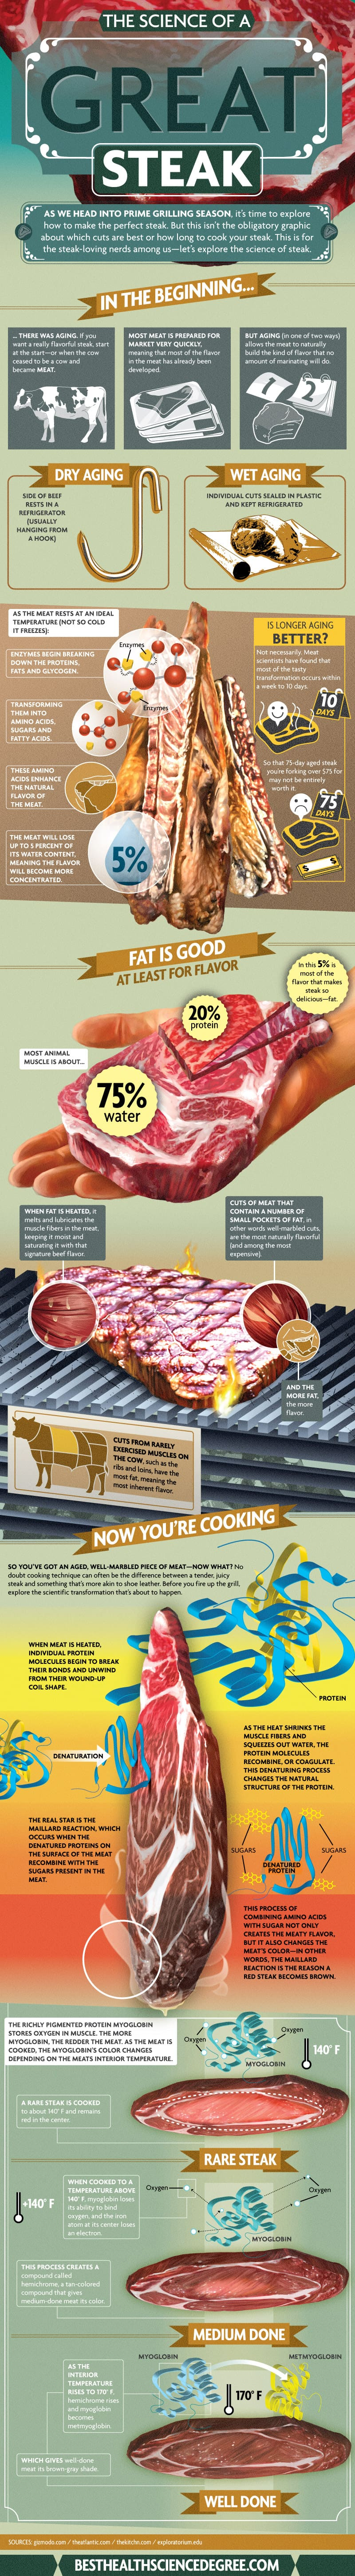 the-science-of-a-great-steak_51a4f2ba64c23.jpg